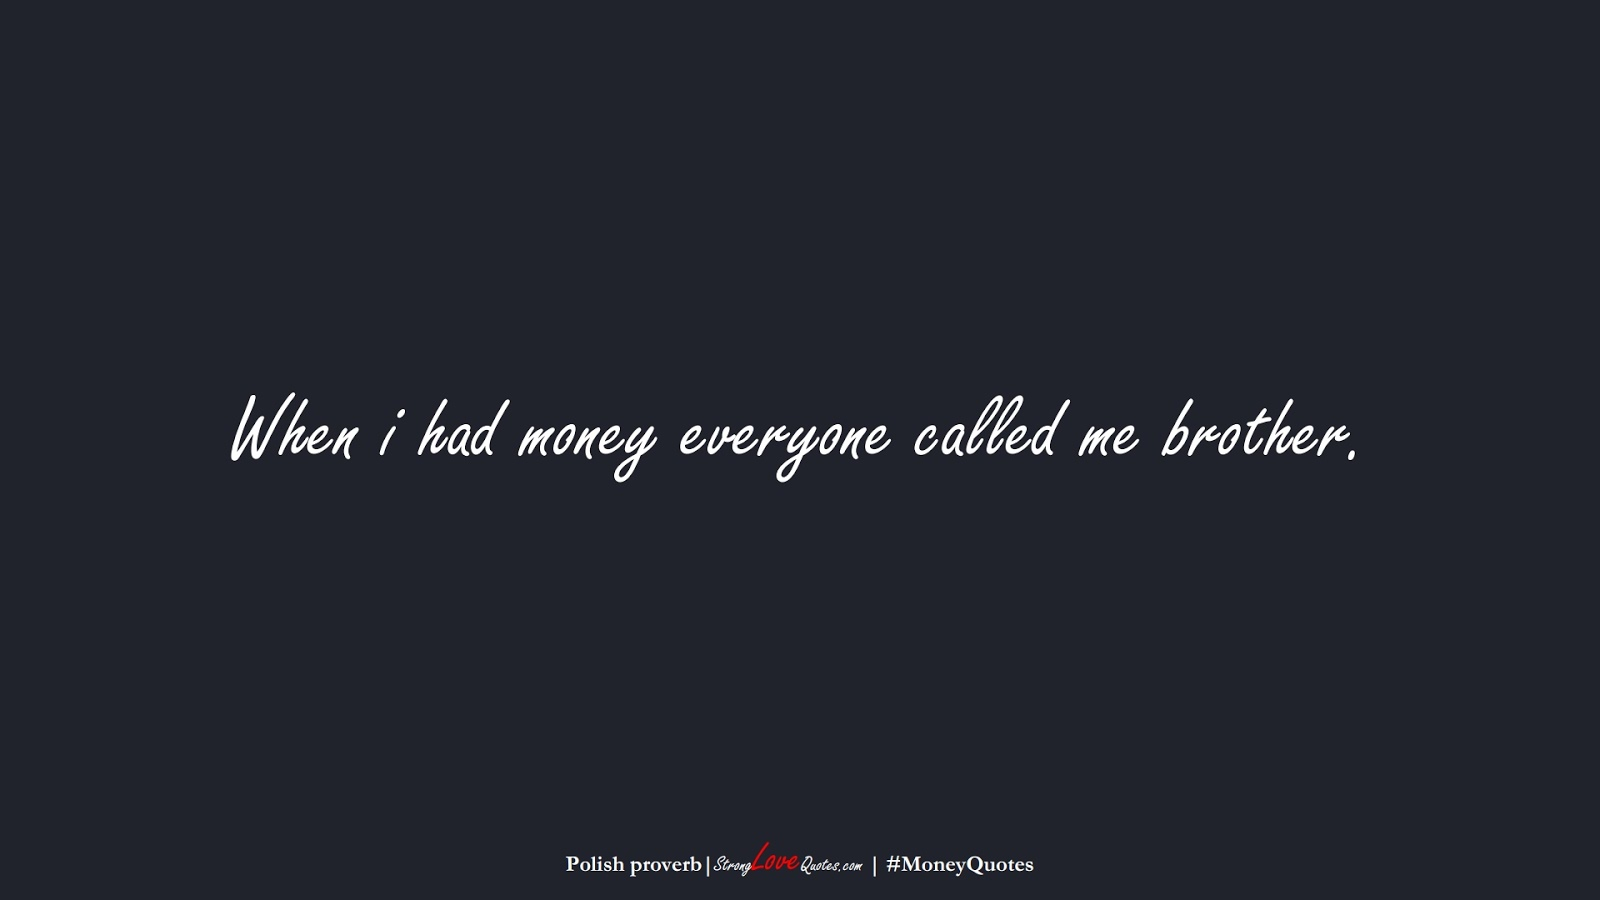 When i had money everyone called me brother. (Polish proverb);  #MoneyQuotes